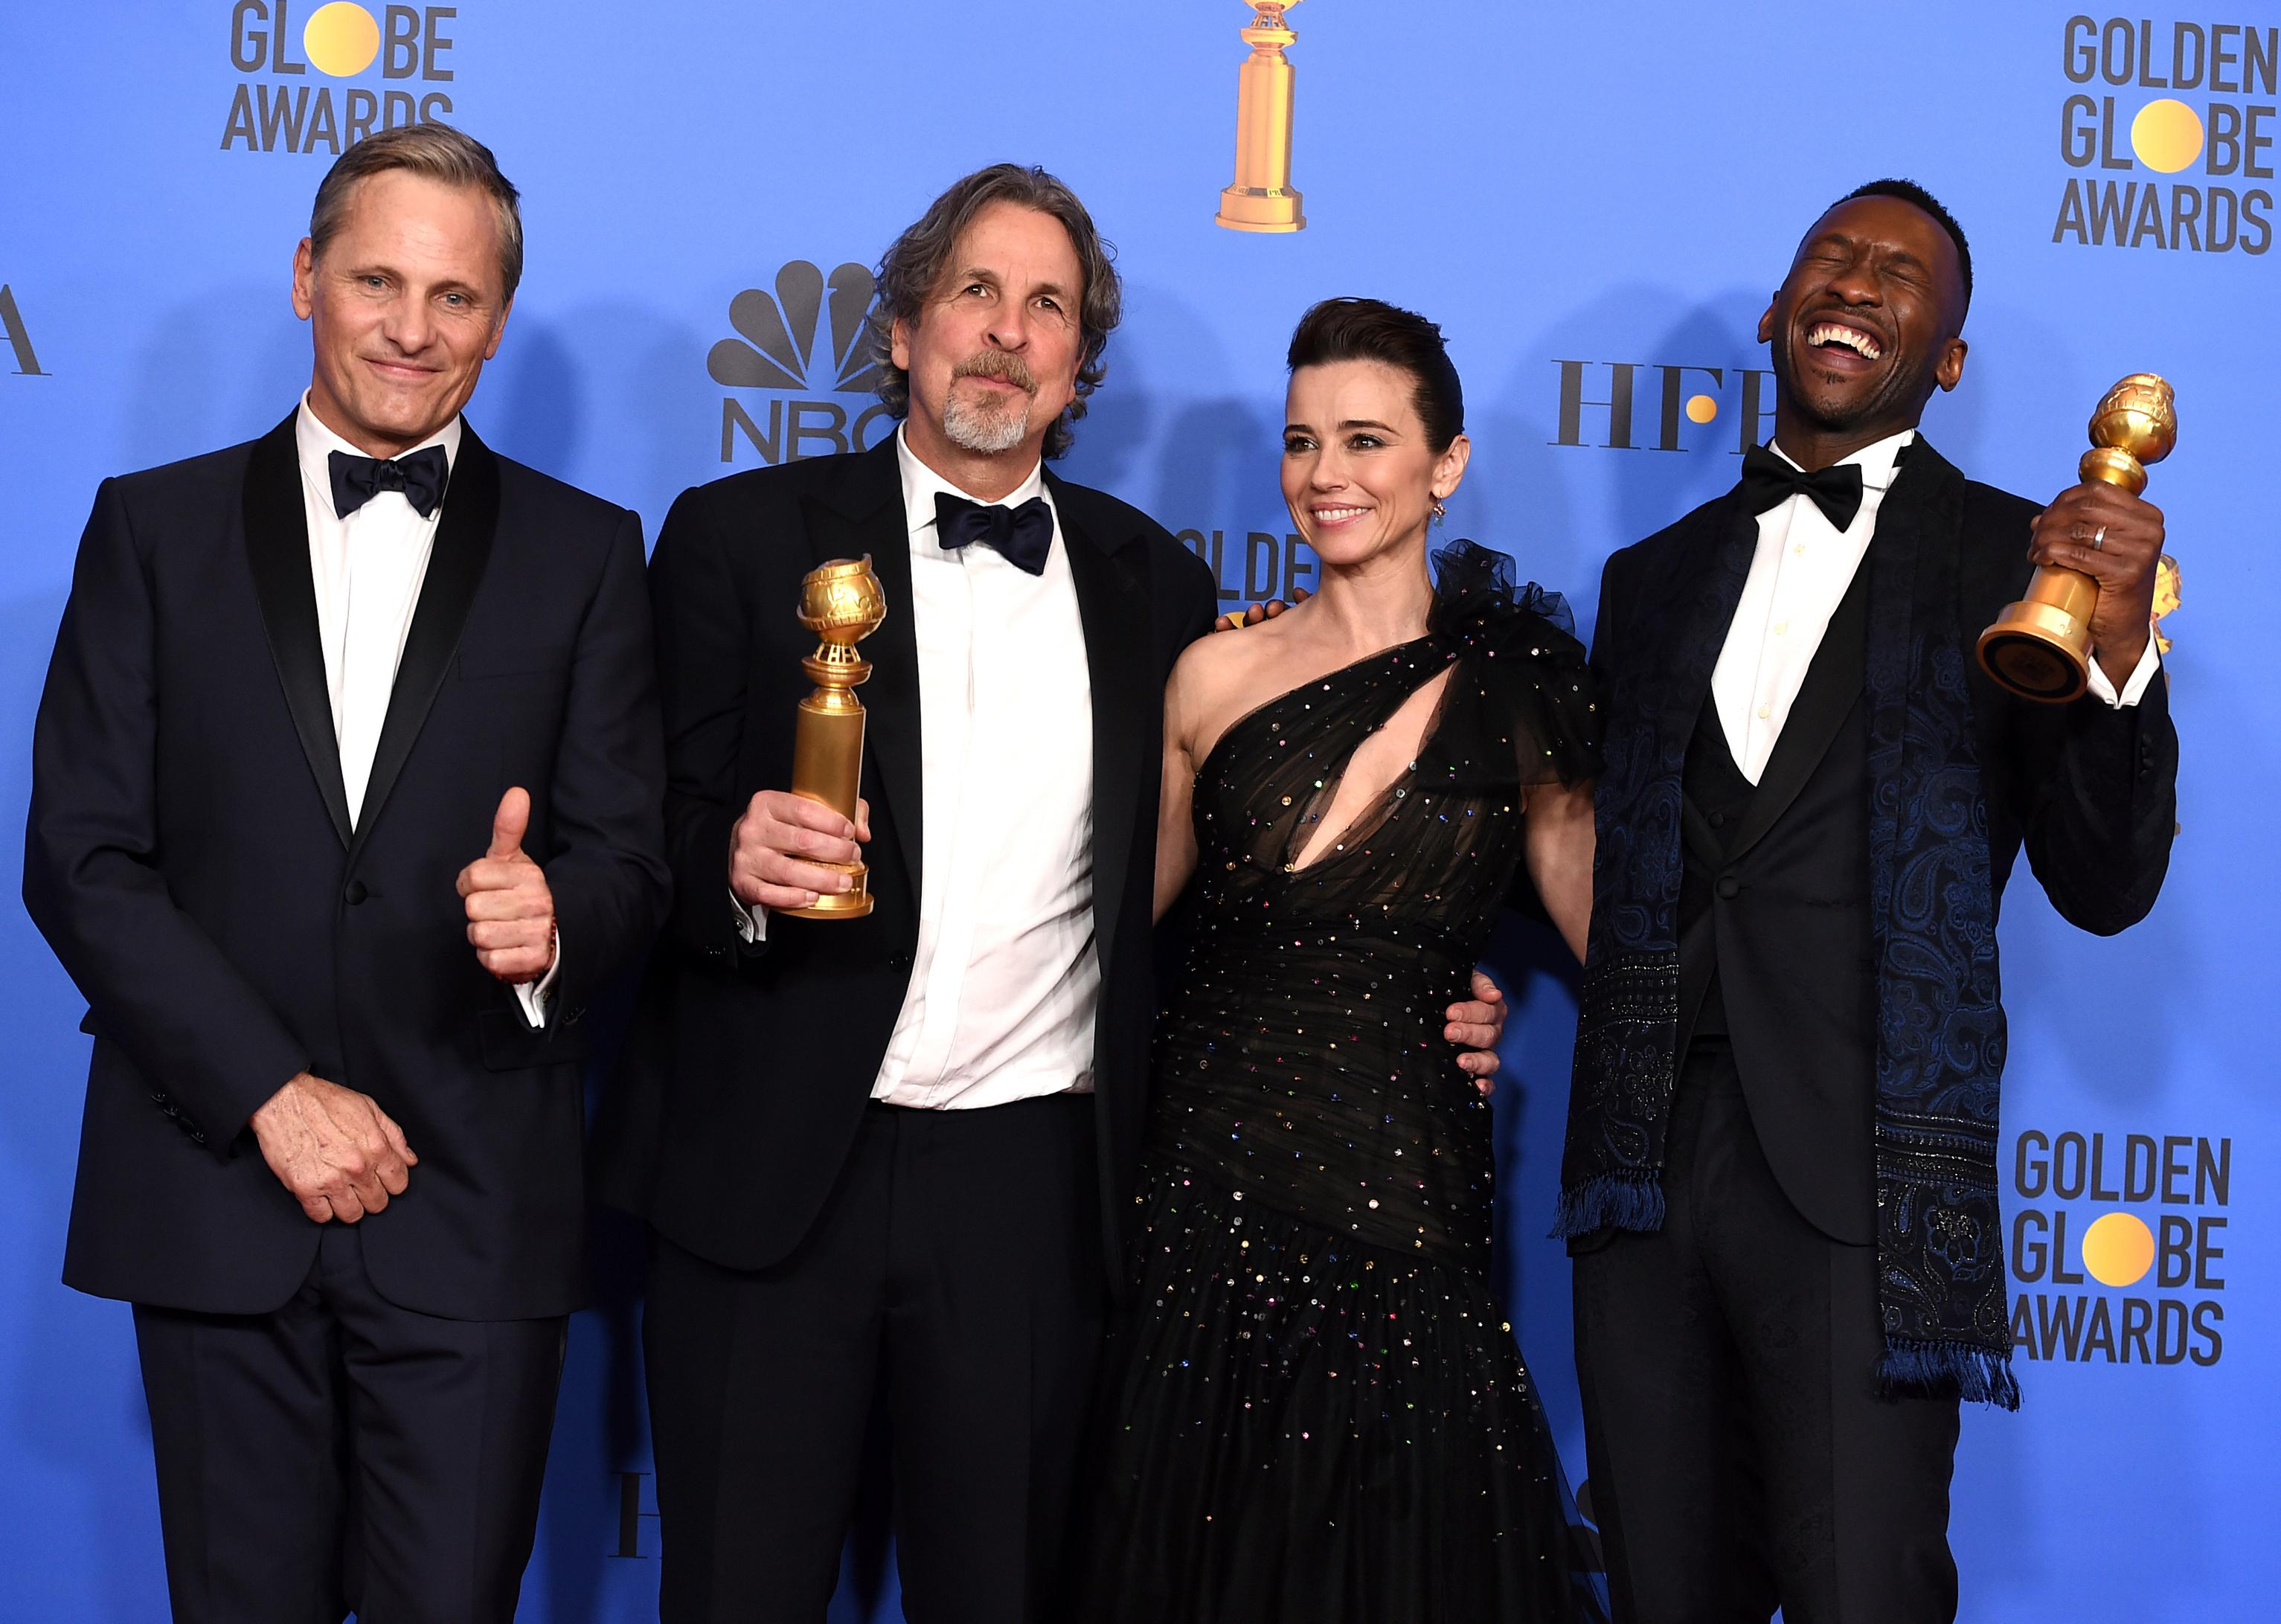 Viggo Mortensen, from left, Peter Farrelly, Linda Cardellini and Mahershala Ali,{ } at the 76th annual Golden Globe Awards at the Beverly Hilton Hotel on Sunday, Jan. 6, 2019, in Beverly Hills, Calif. (Photo by Jordan Strauss/Invision/AP)